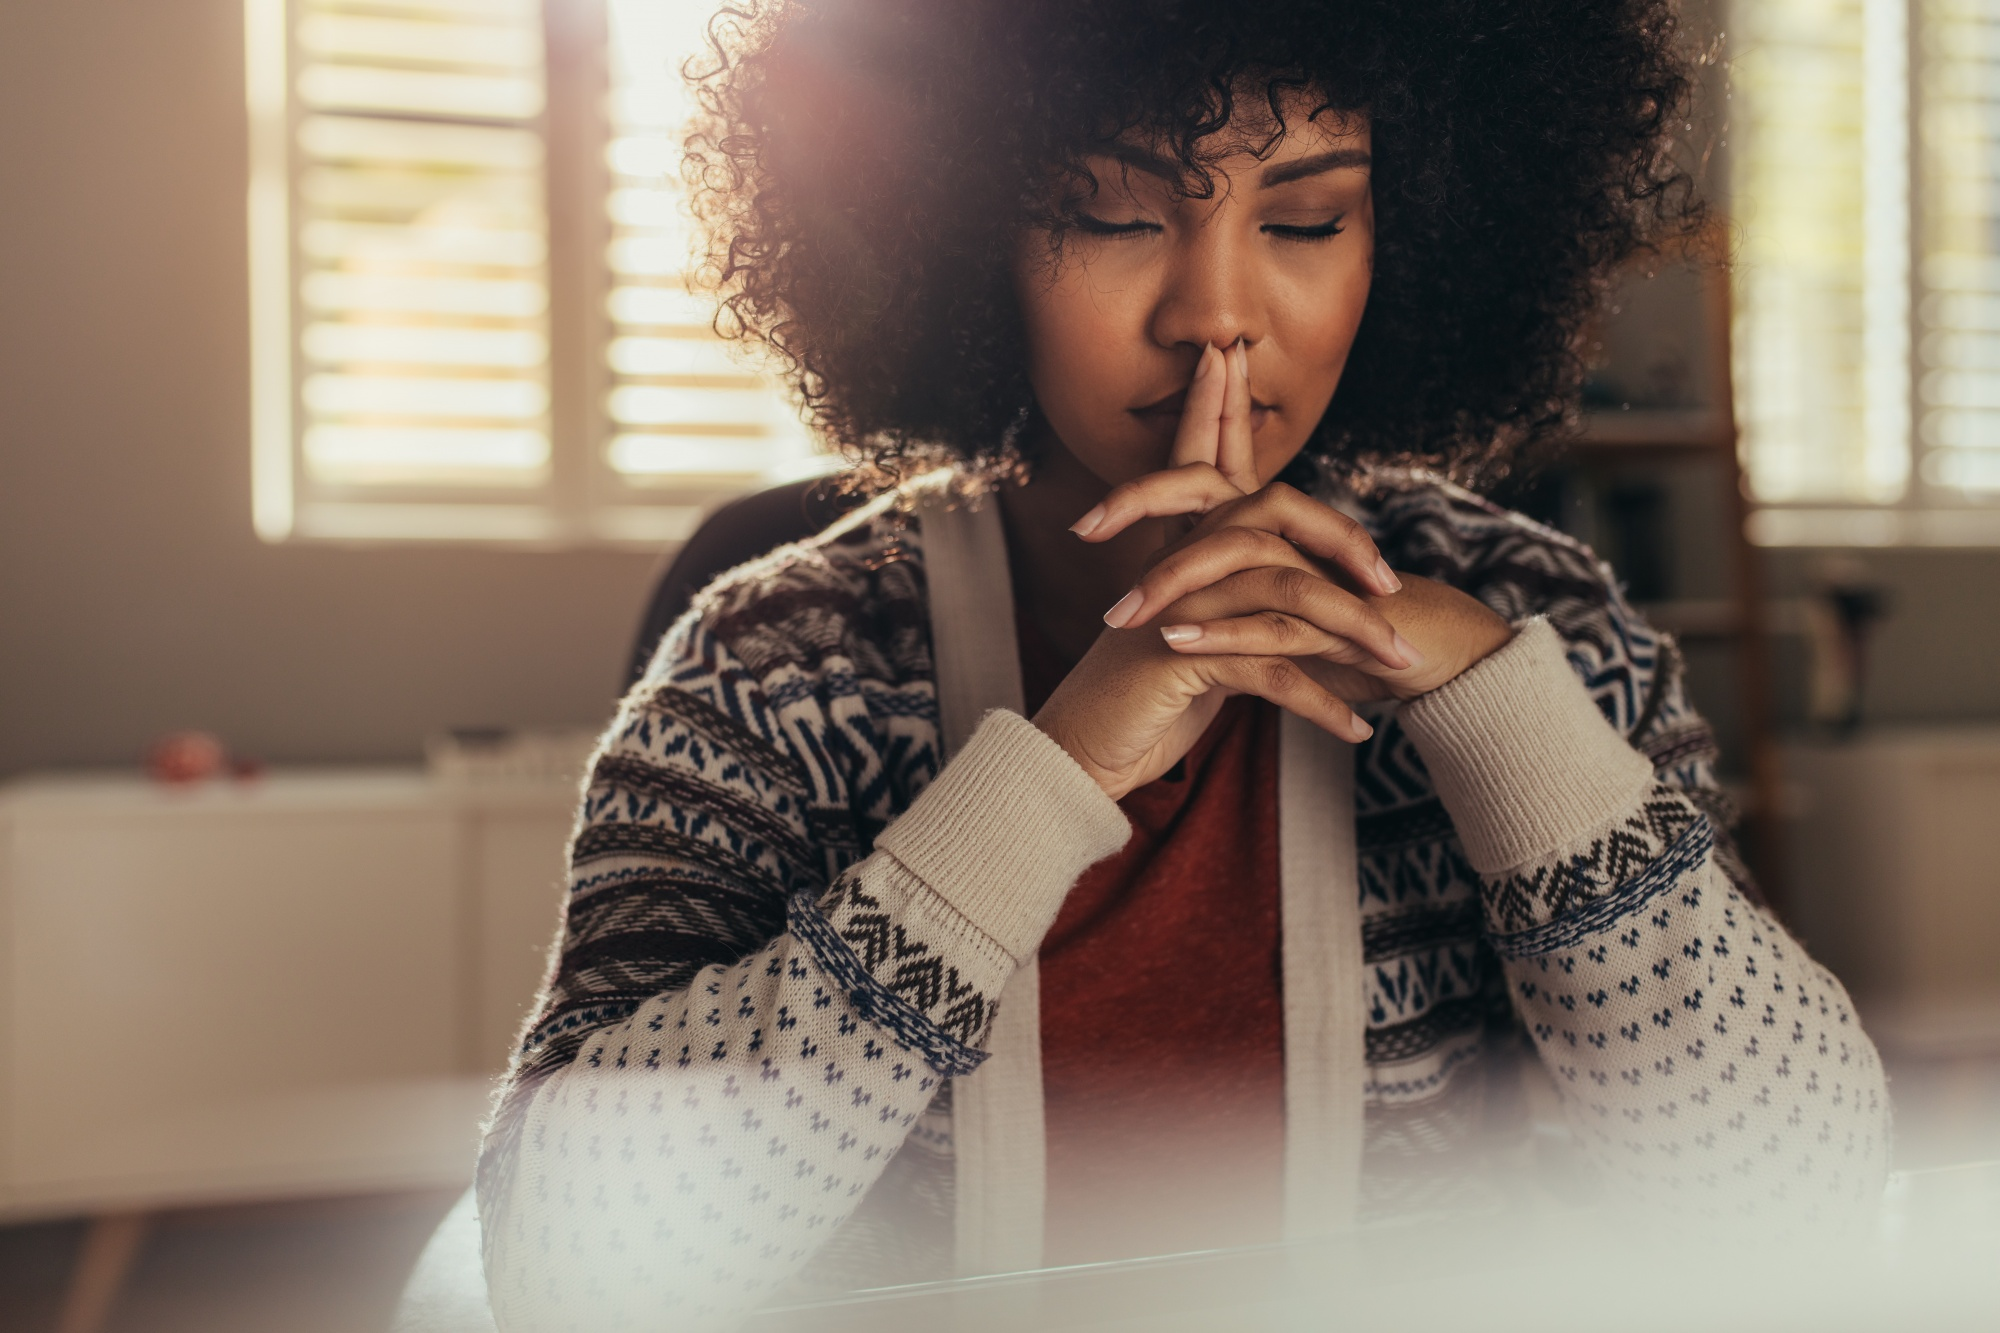 Embrace negative thoughts and turn them into joy, Black woman with eyes closed thinking in red shirt and fair isle cardigan